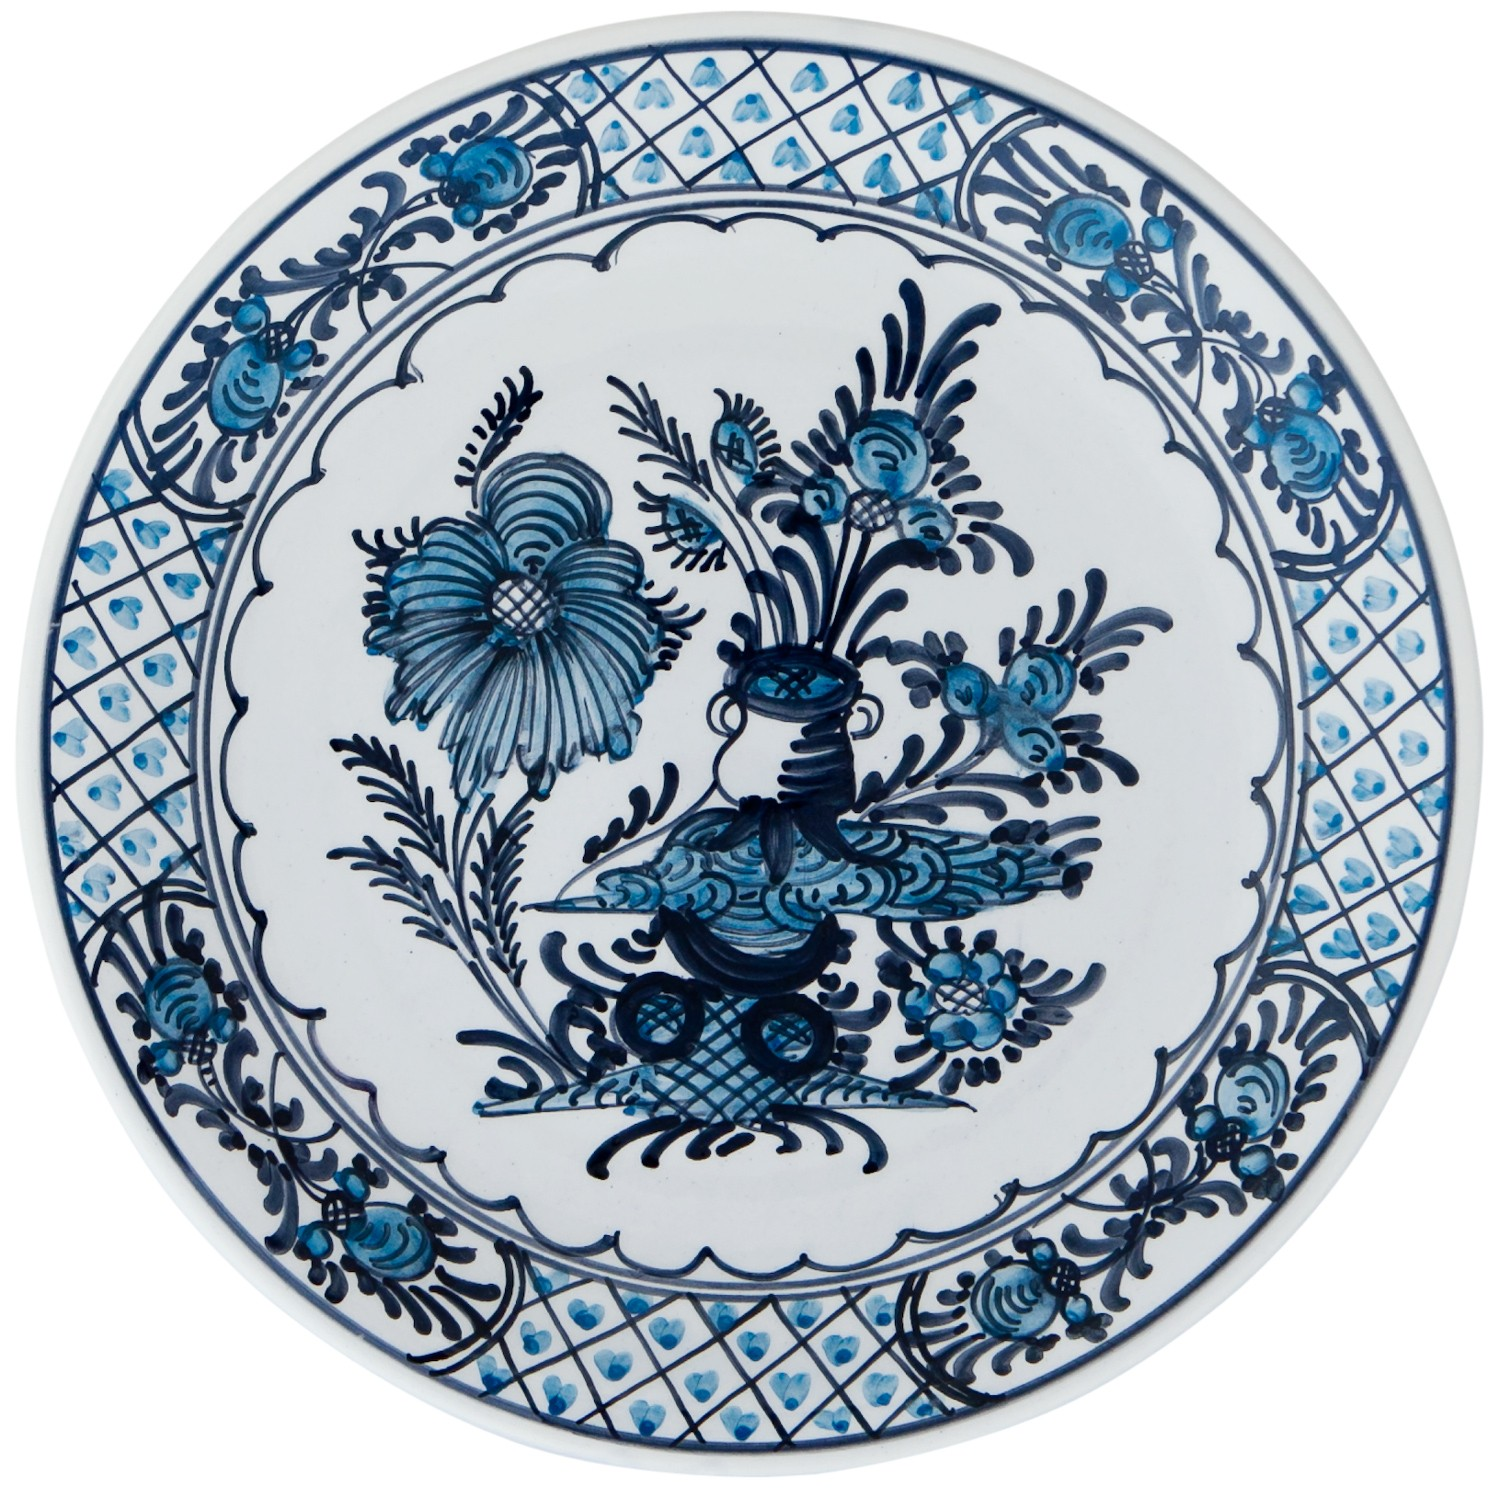 Hand_Painted_Ceramic_Dinner_Decorative_Plates-Garden_Flowers-Blue-White-1